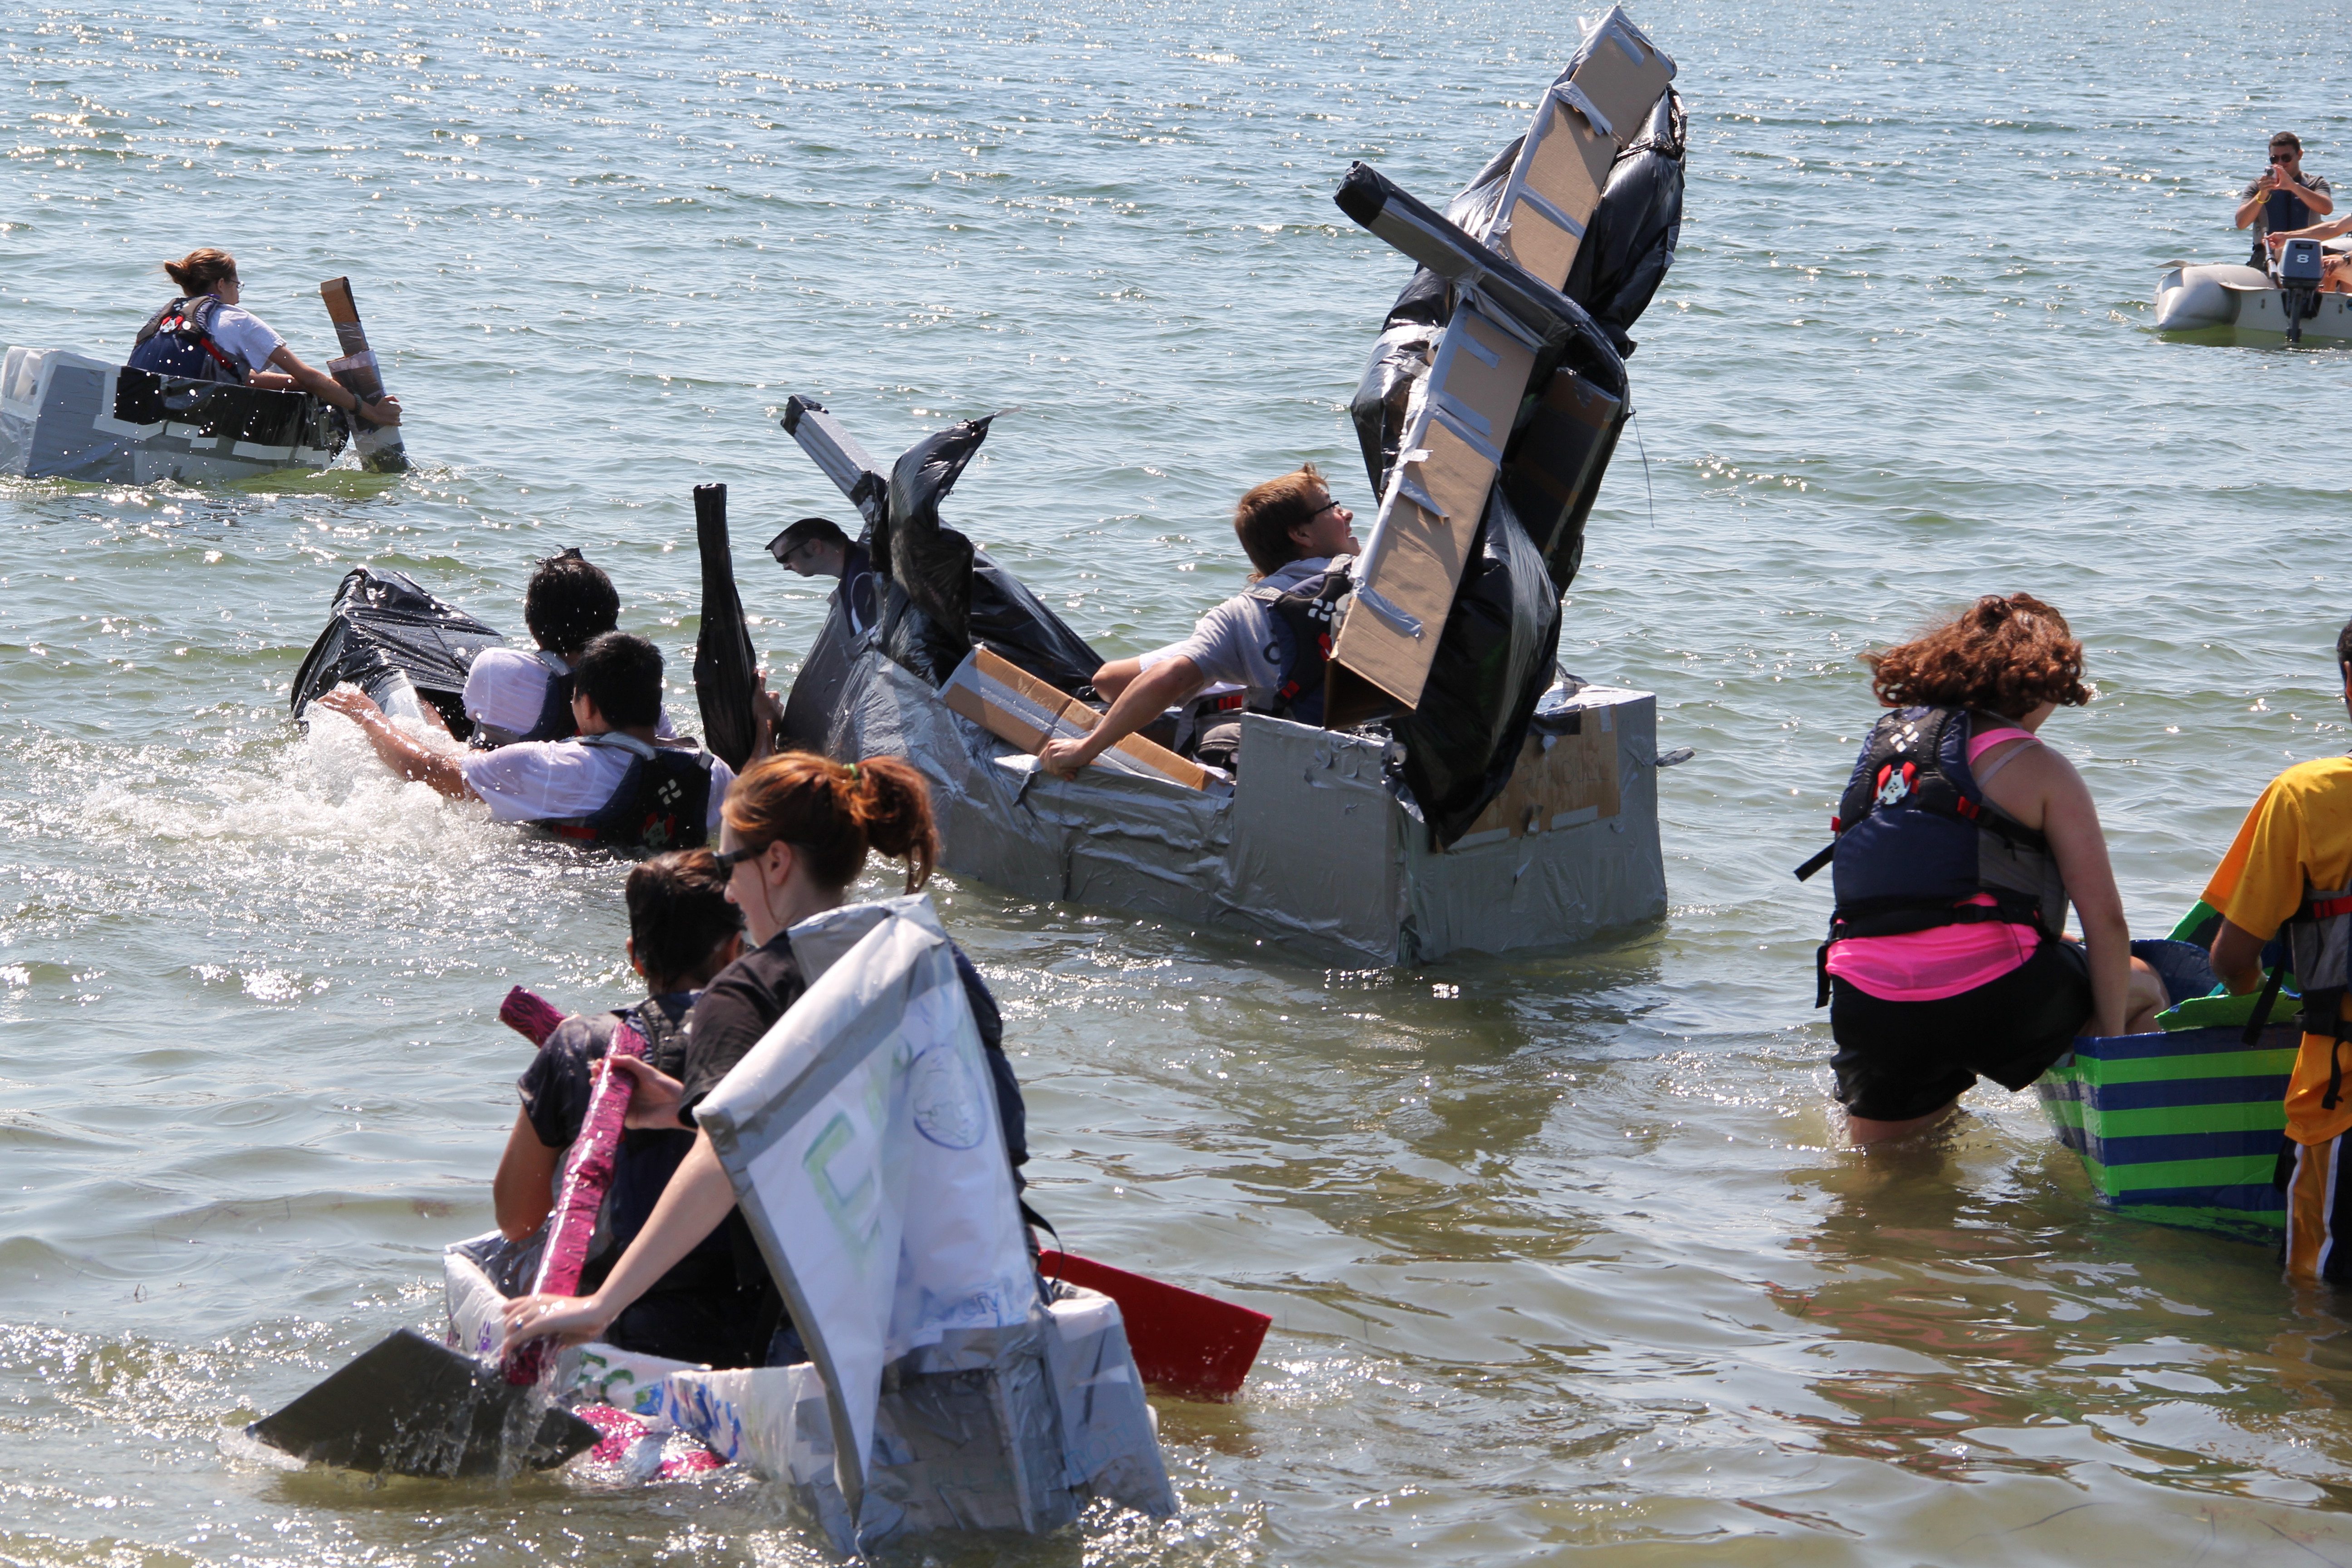 Starting line of the Cardboard Boat Race